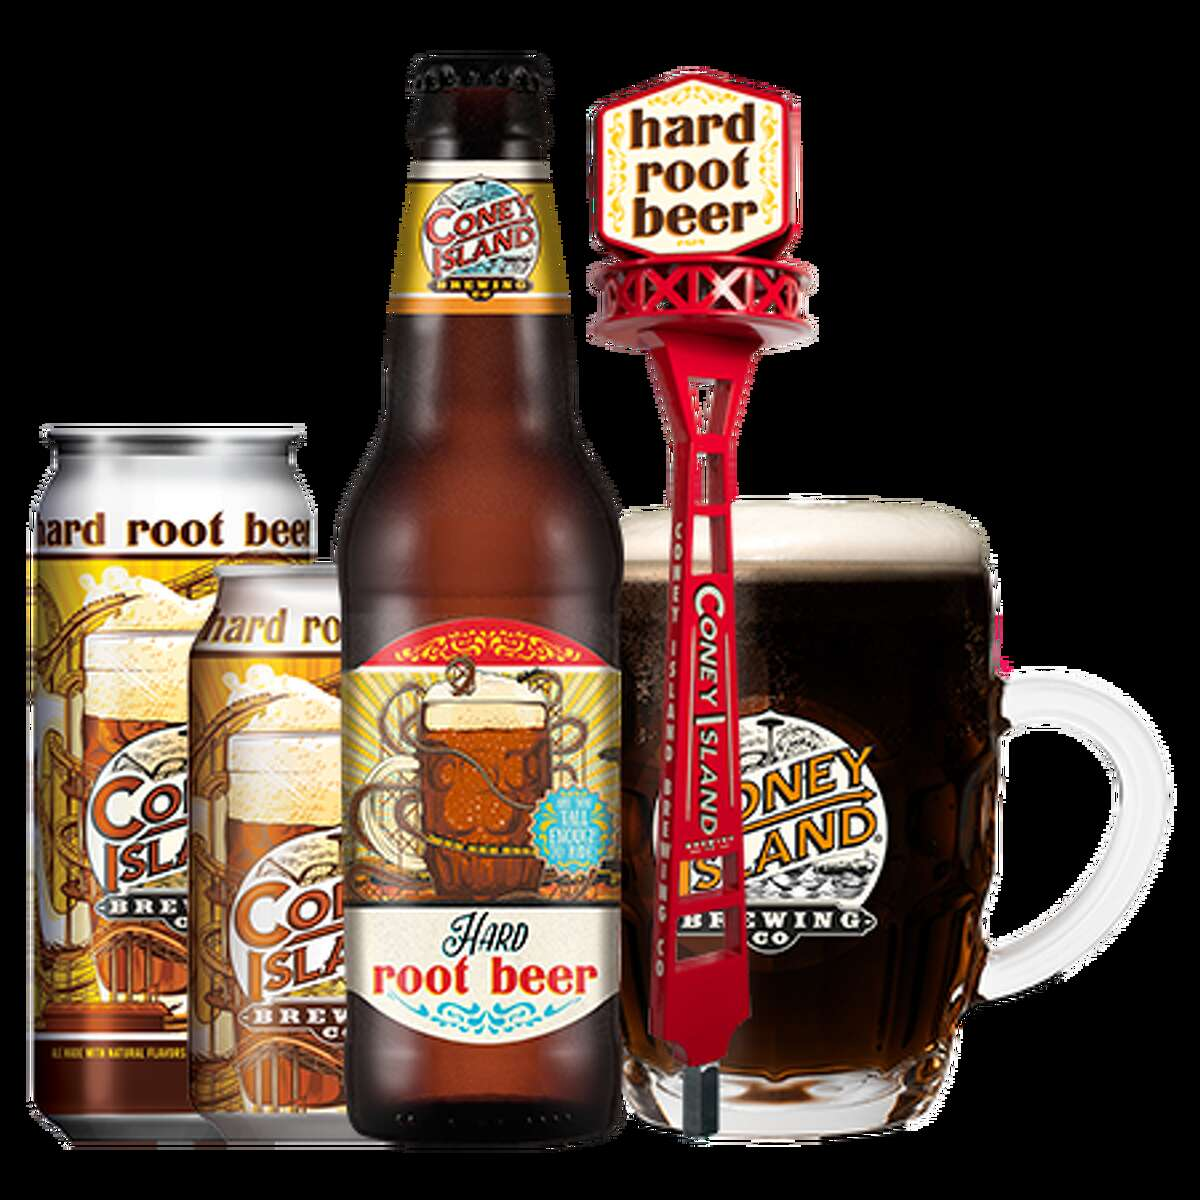 Coney Island Brewing Company, based in Brooklyn, might have the biggest reason to be making an adult version of root beer - not many places seem more deserving of the beverage than a permanent carnival. Flavored with vanilla, licorice, and birch, this variety has an easygoing ABV of 5.8 percent. Buy at Bevmoand local Safeway and Target stores.